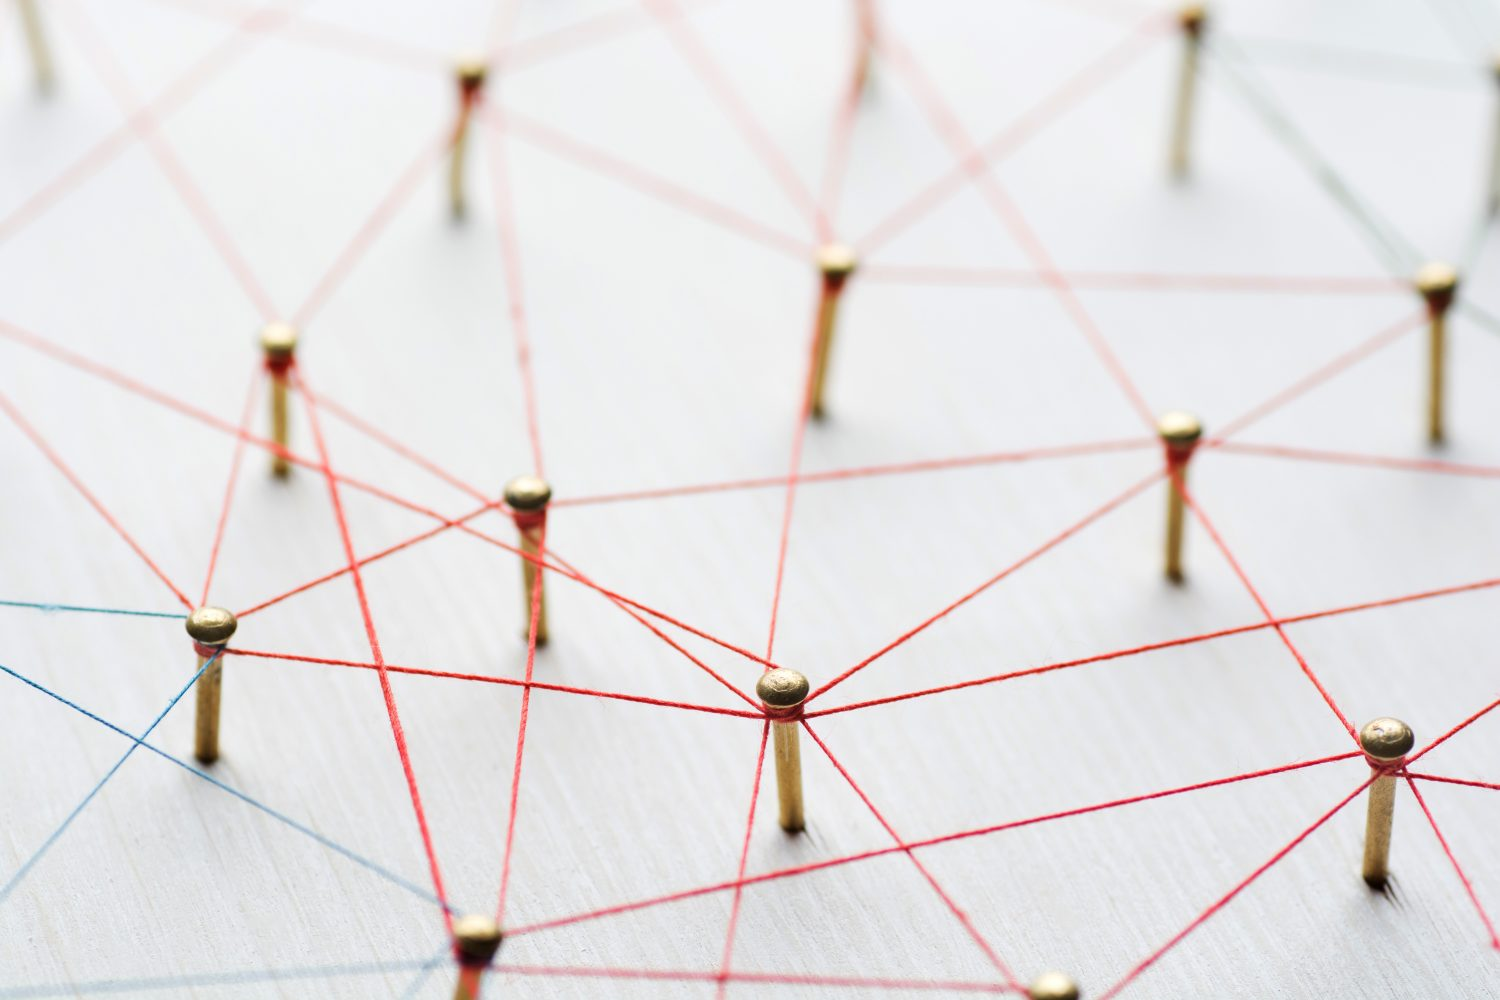 Adoption of Blockchain to Secure IoT Doubled in 2018, Says Gemalto thumbnail